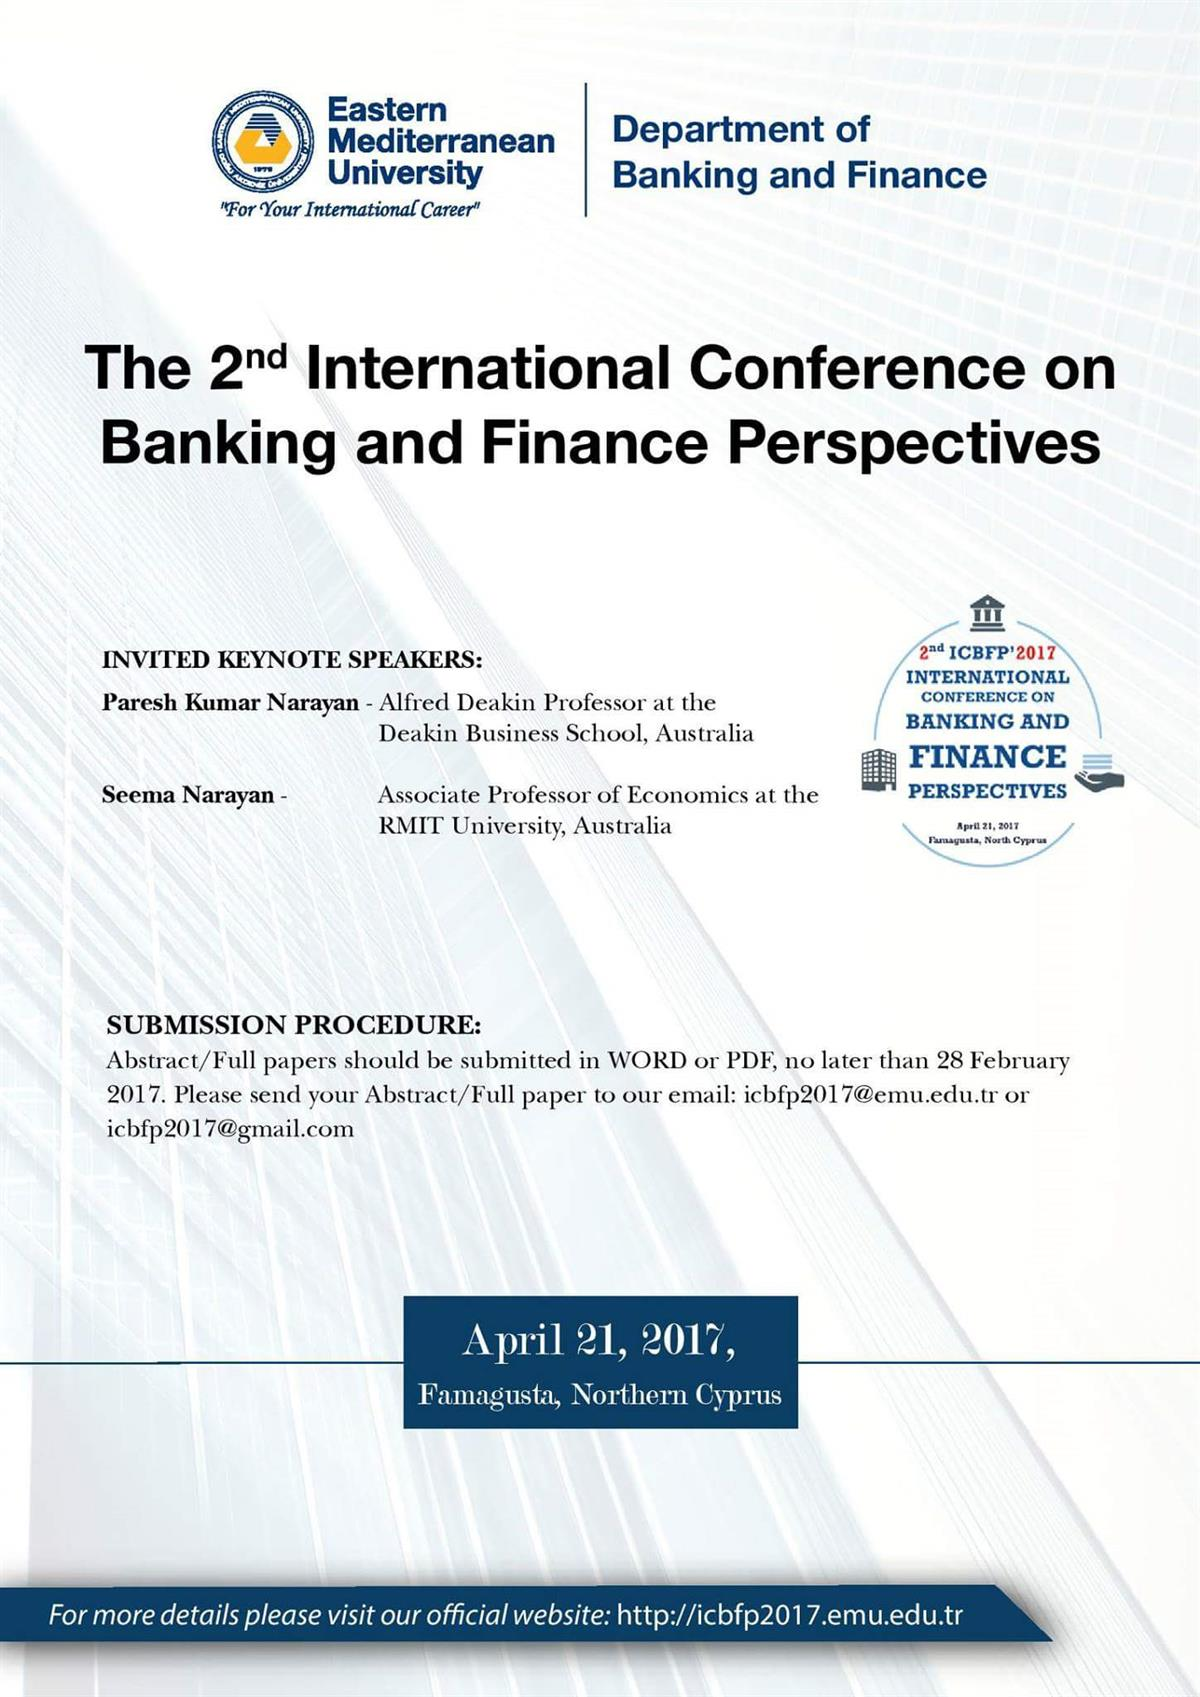 2nd International Conference on Banking and Finance Perspectives (ICBFP)